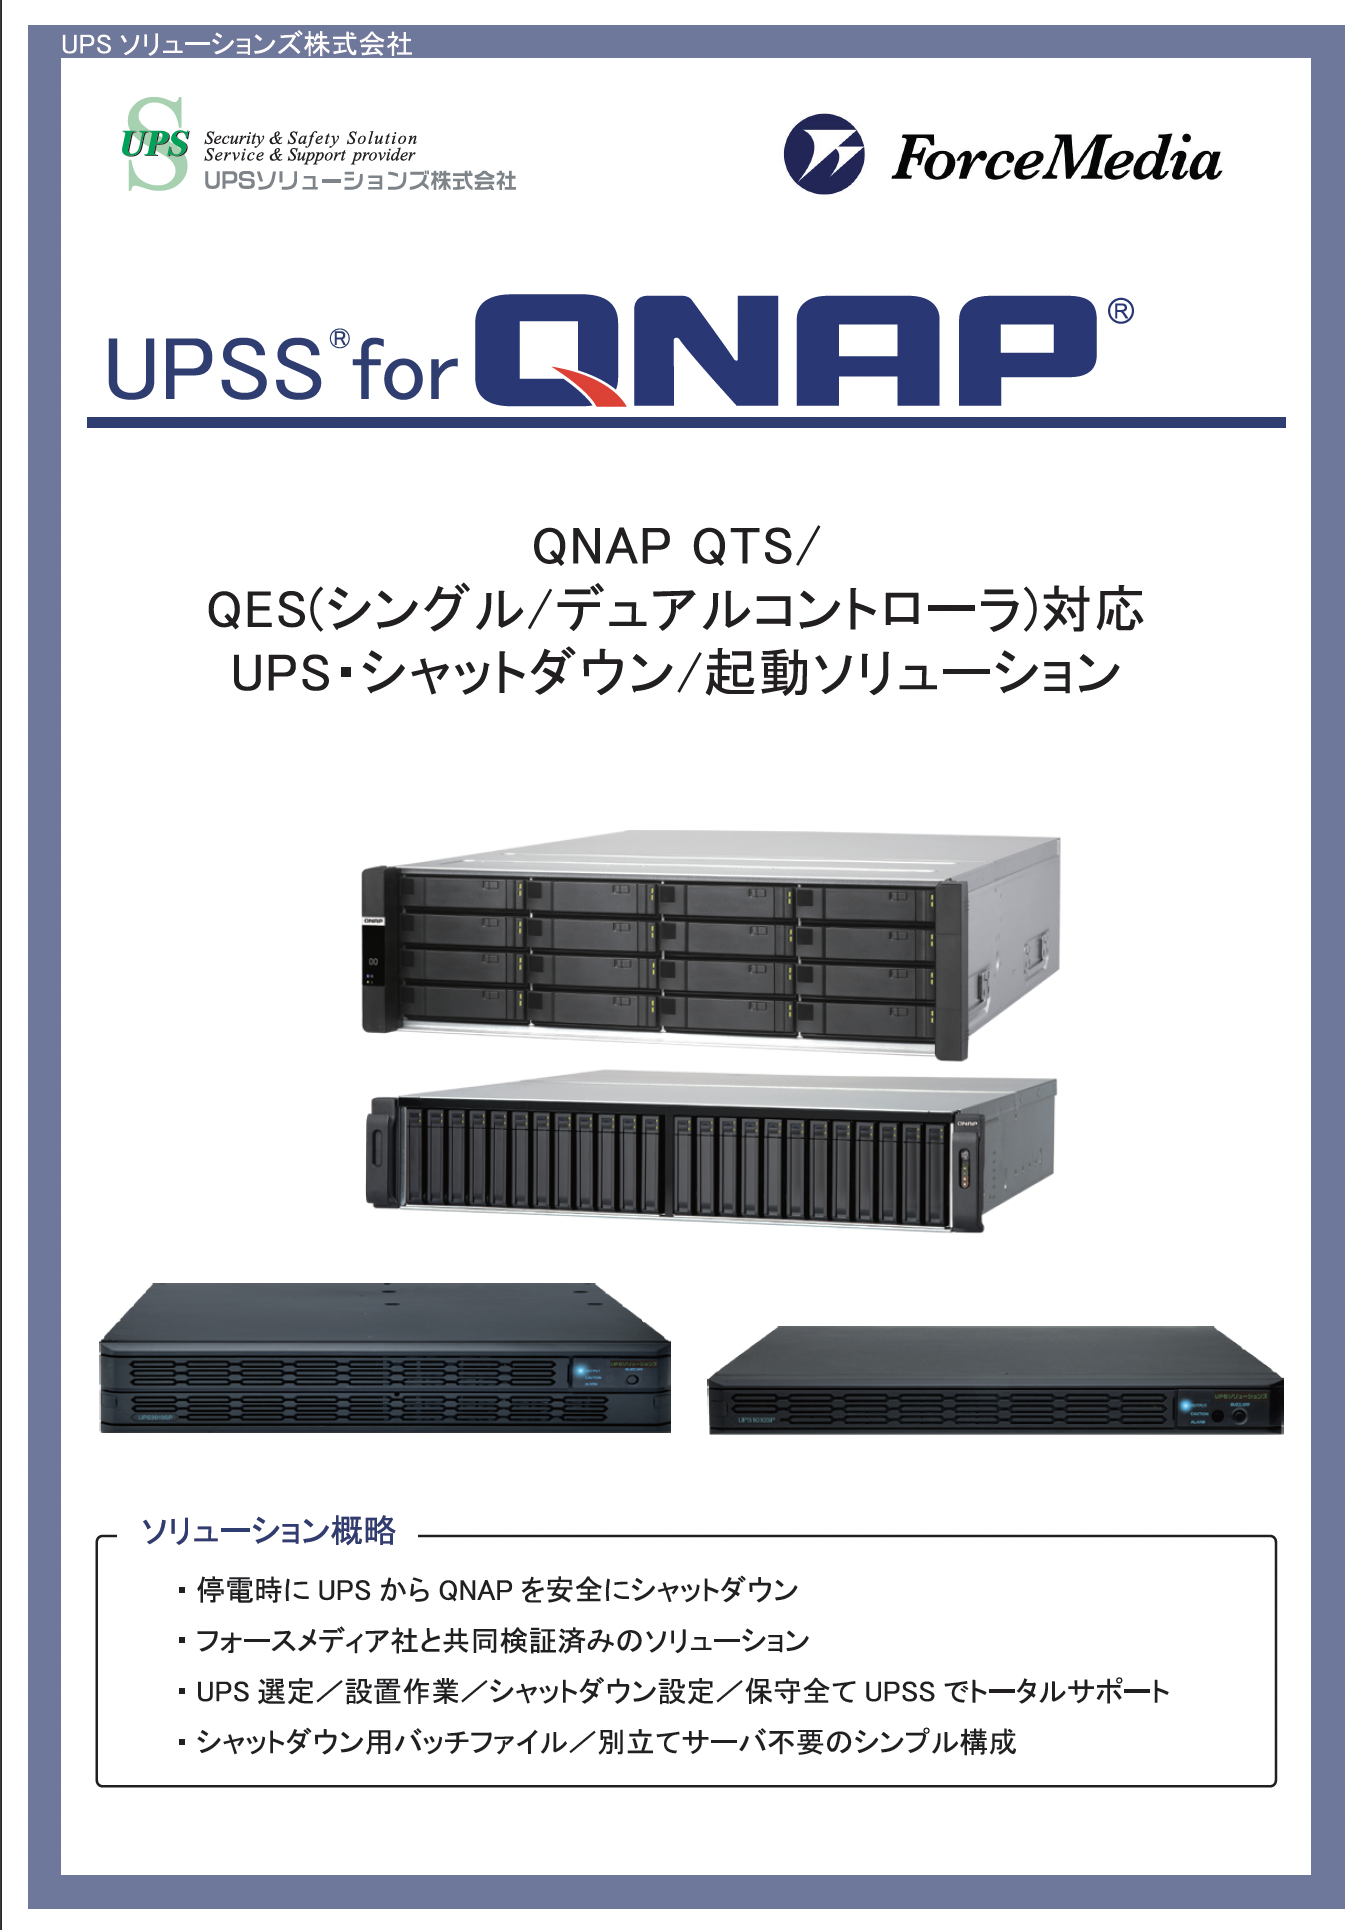 UPSS for QNAP